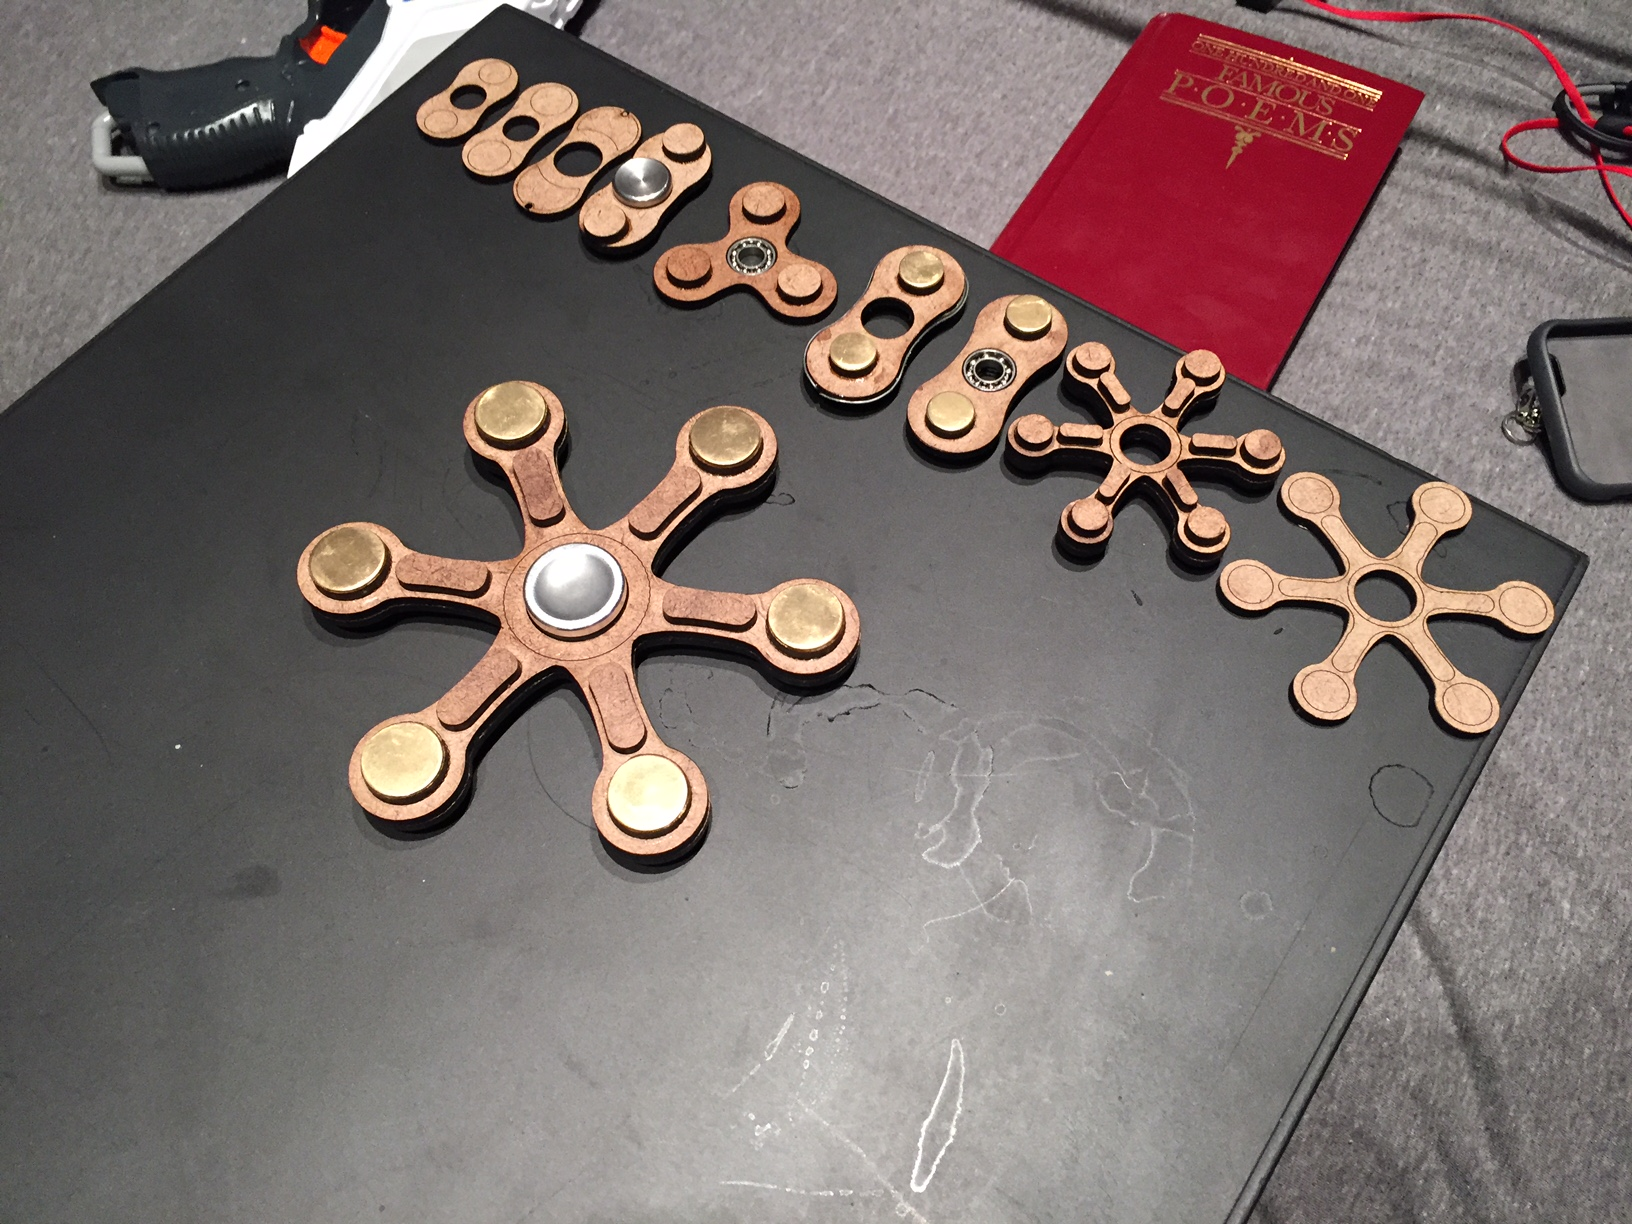 Emmit Flynn, senior, creates his own spinners, a relaxation toy made to help fidgety hands.